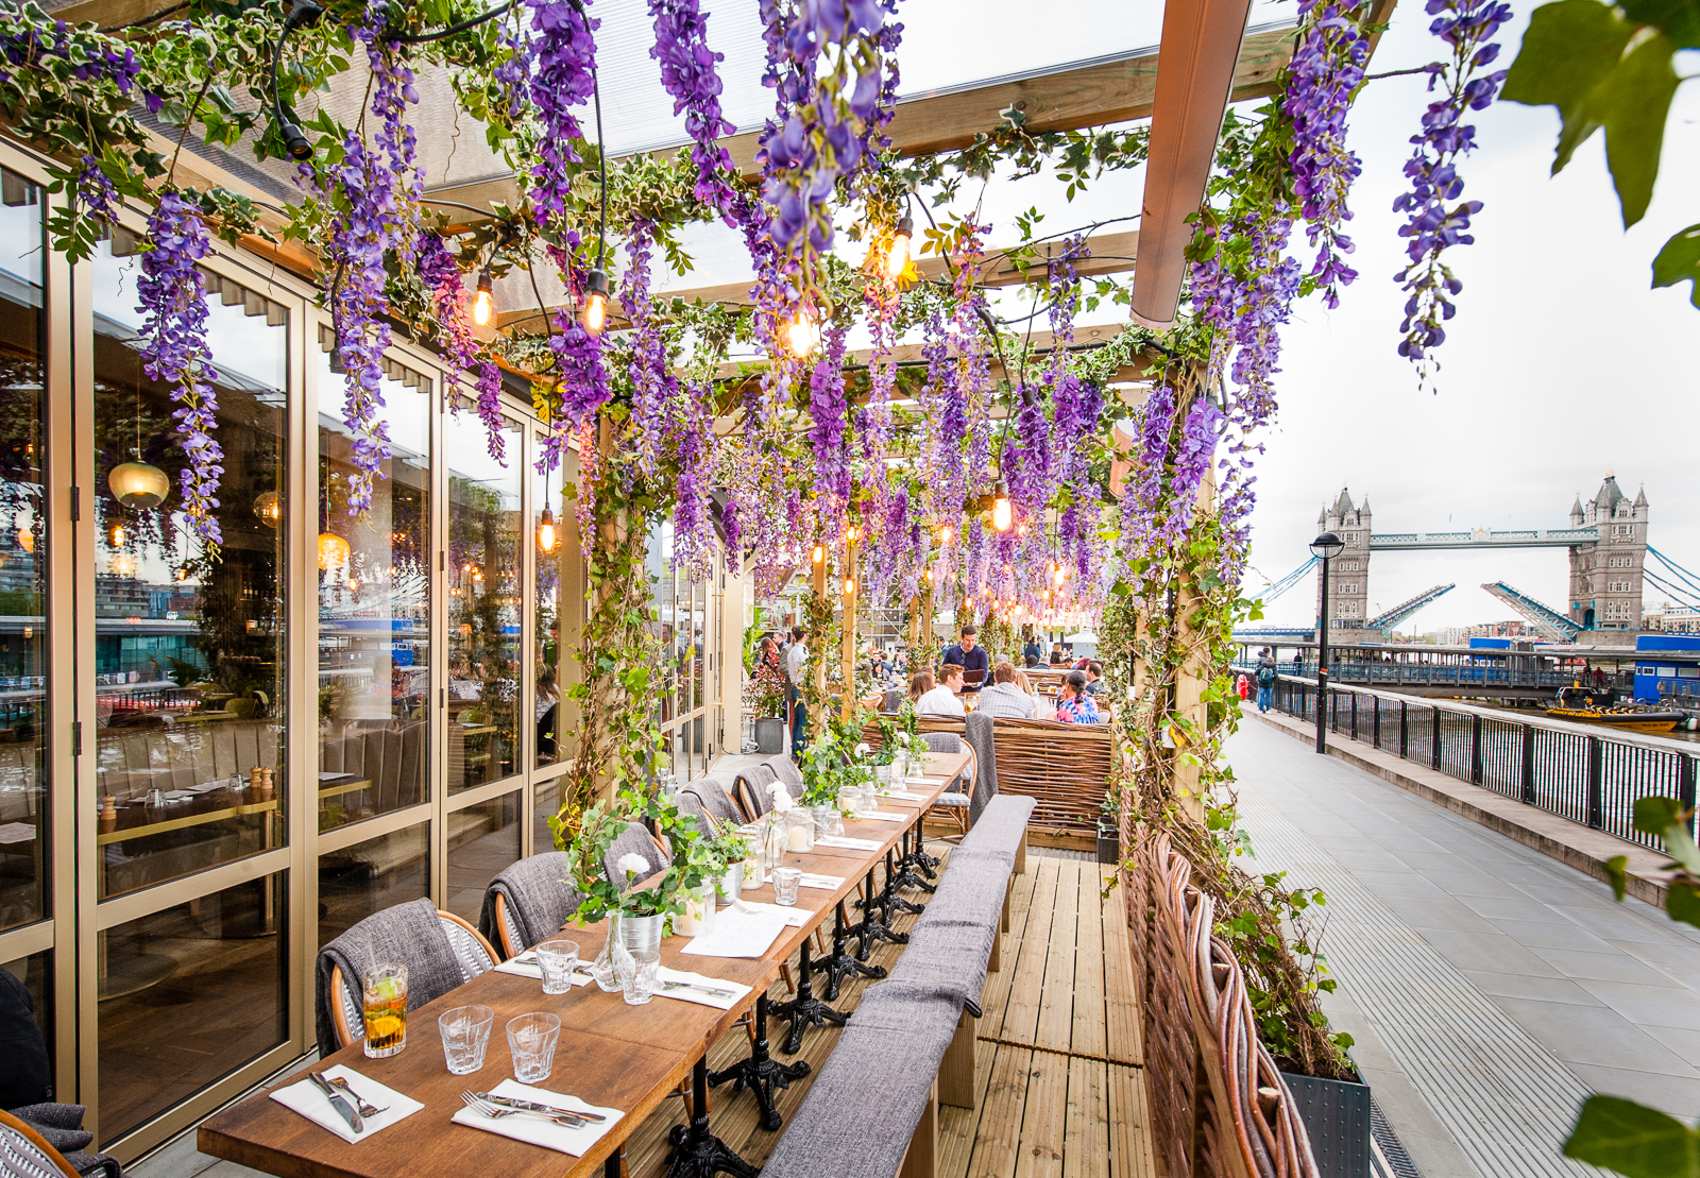 A Coppa Club cabana with wisteria and roses